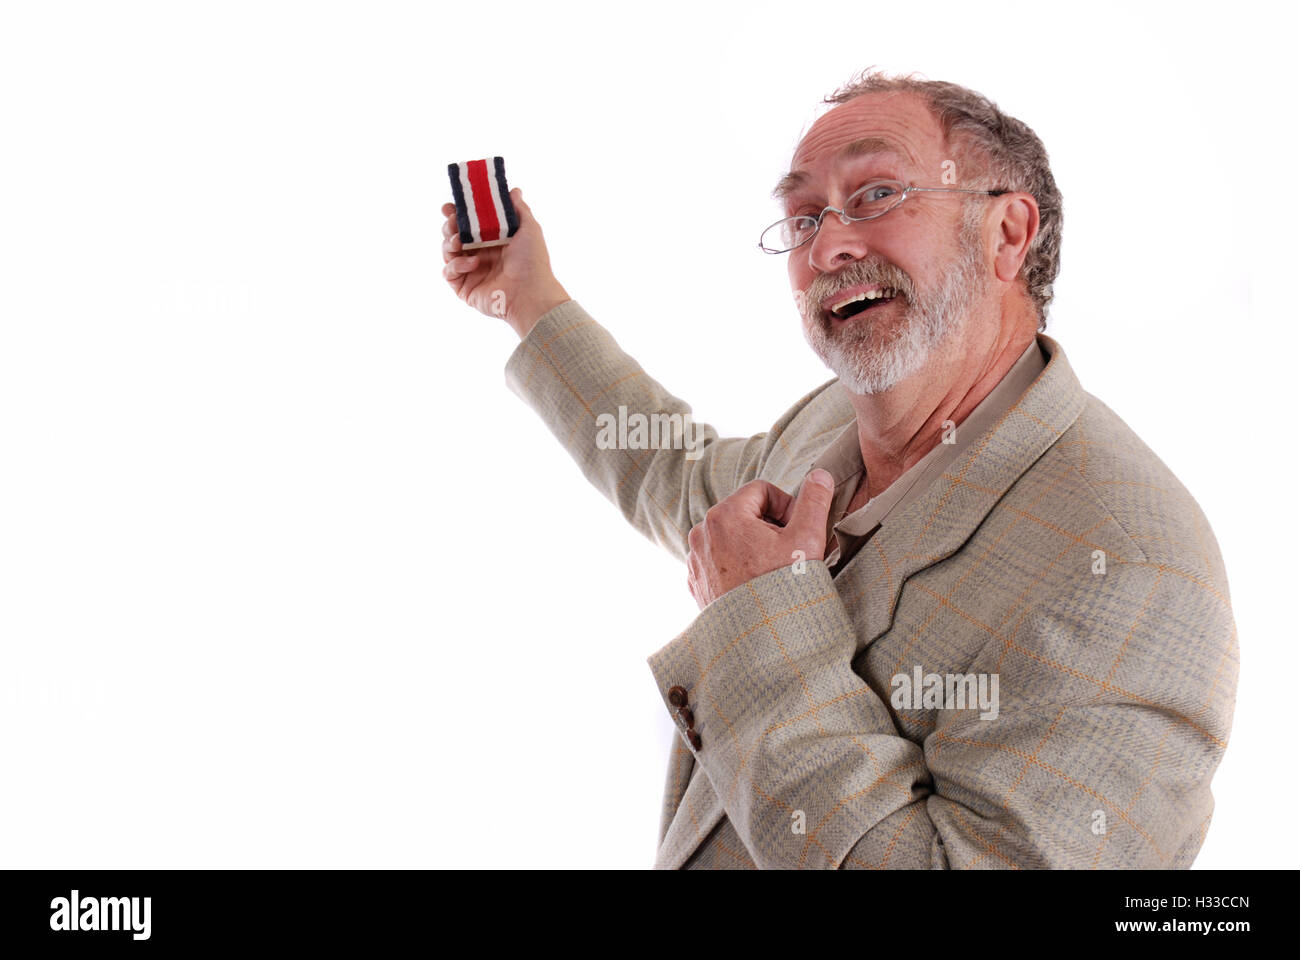 Comical professor gesturing with white board eraser - Stock Image